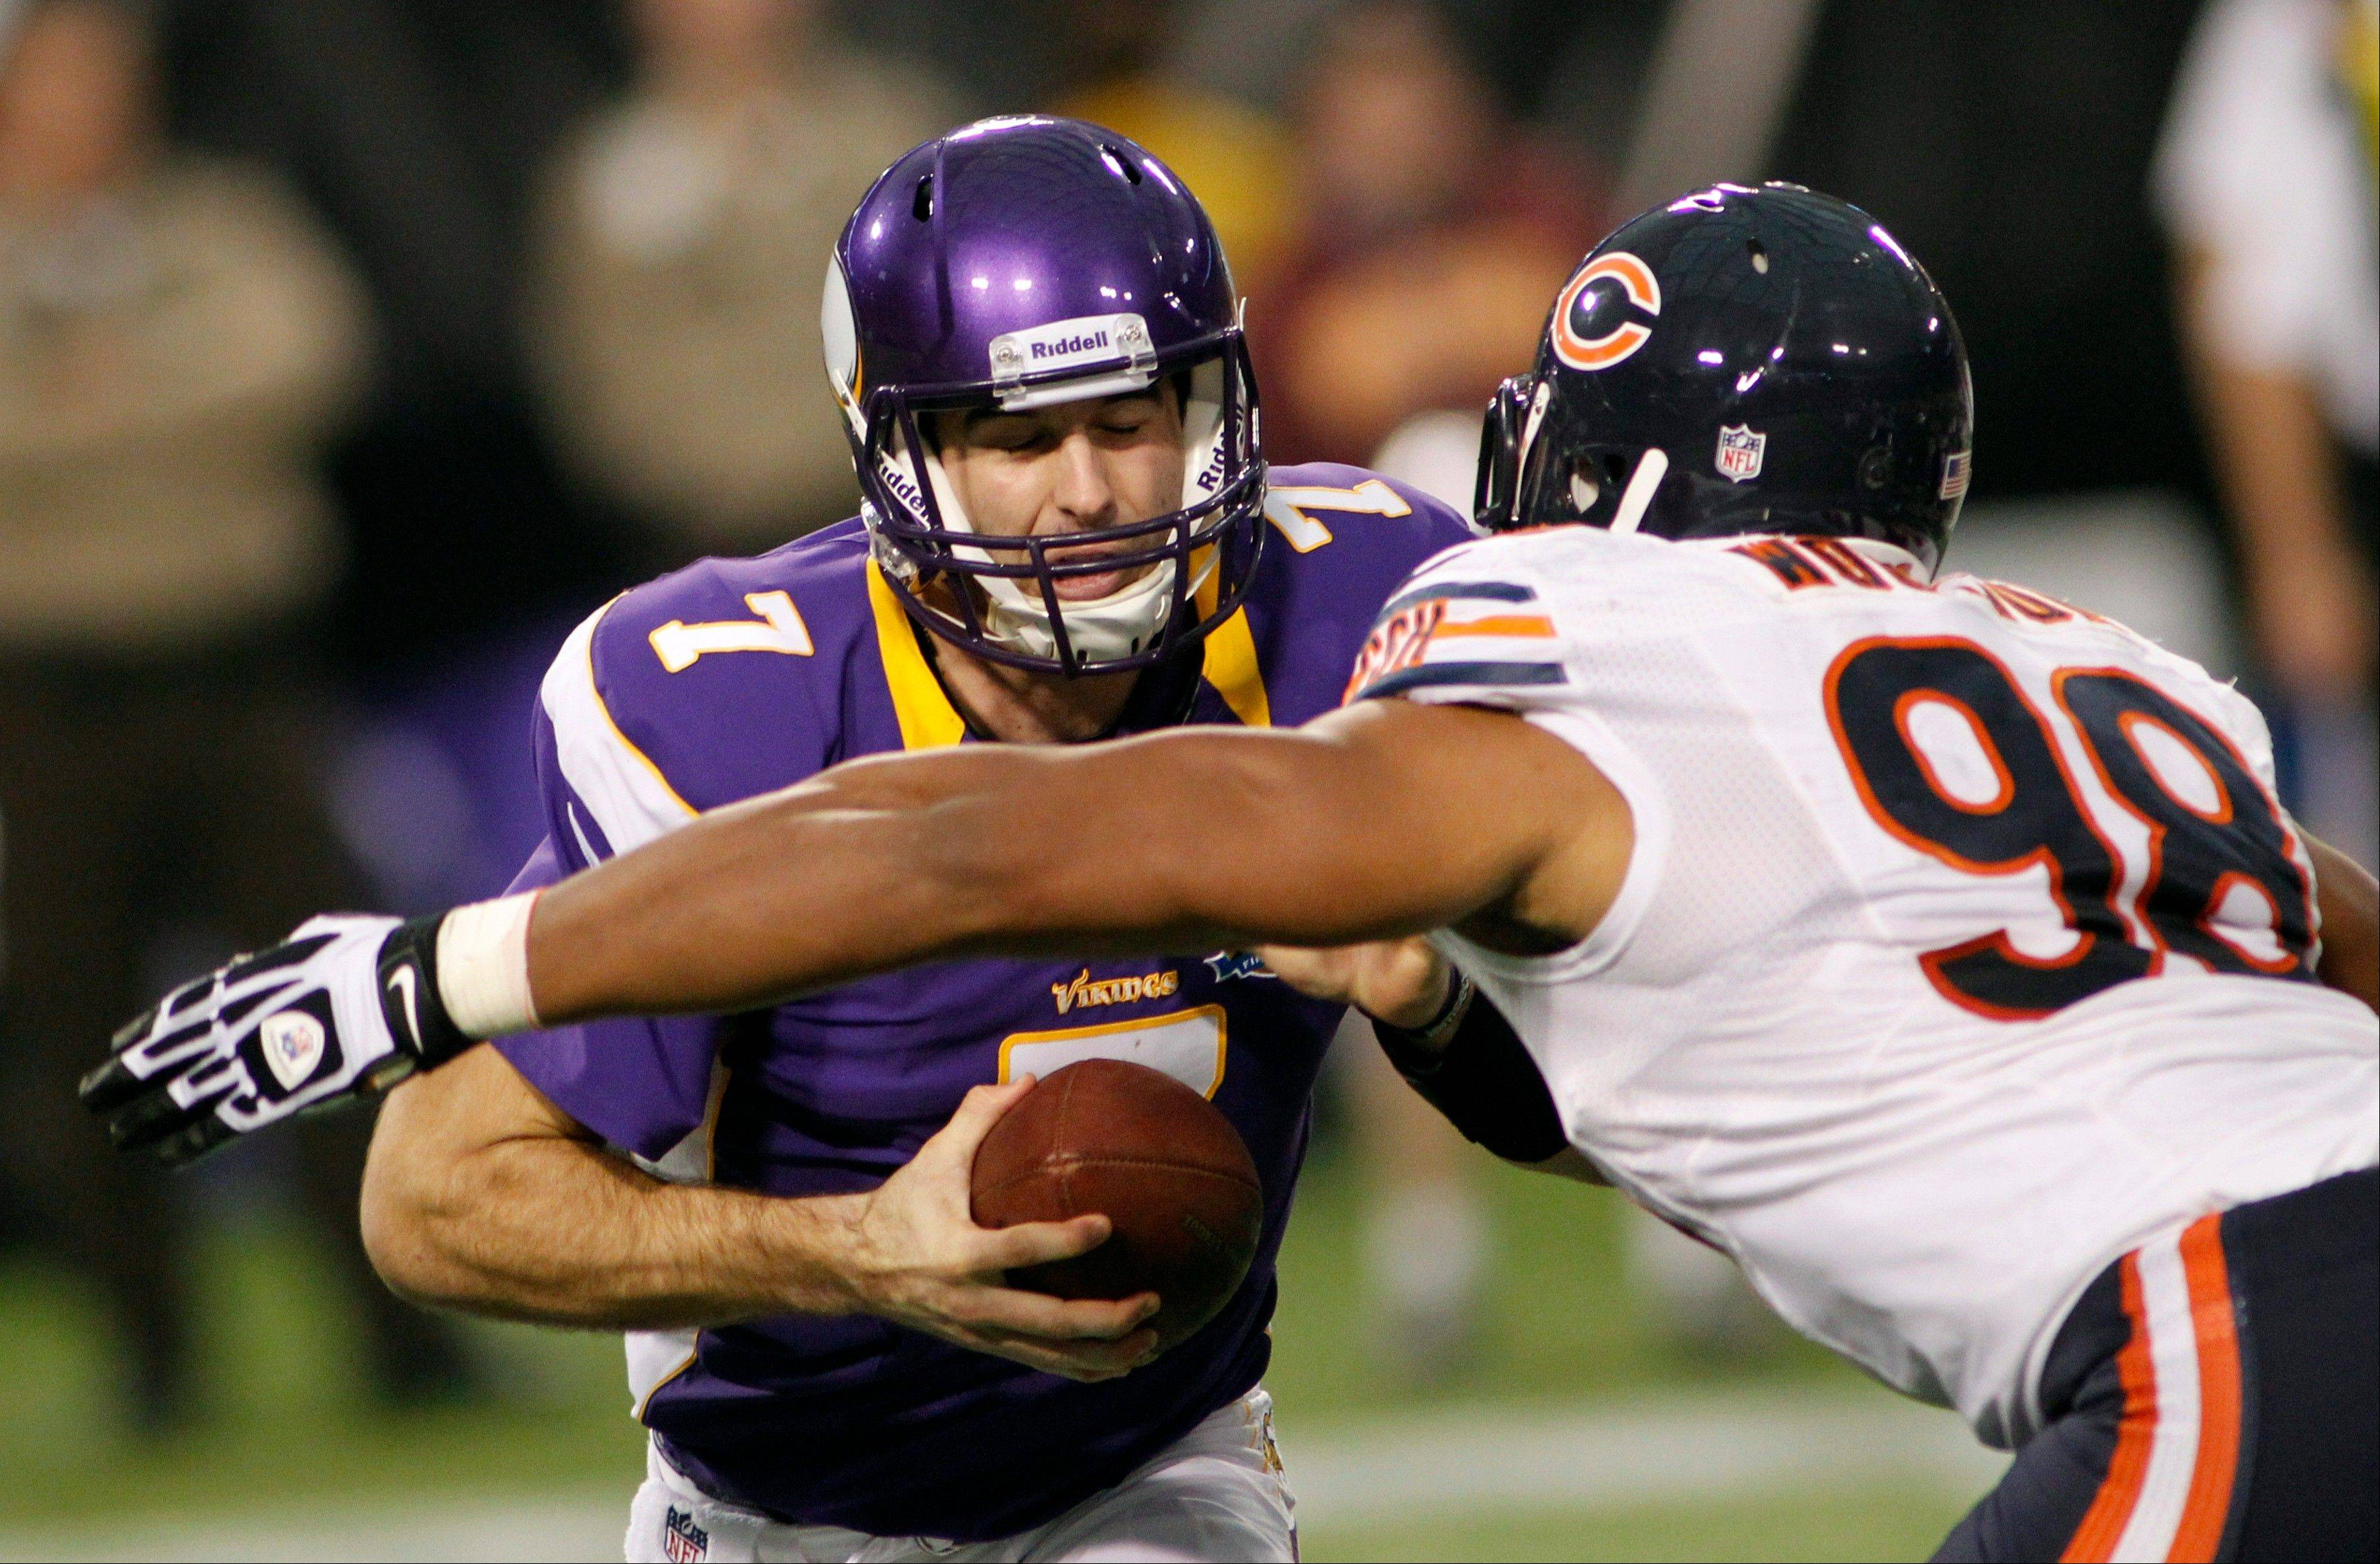 Vikings quarterback Christian Ponder, left, is sacked by Corey Wootton on Dec. 9, 2012, in Minneapolis. Wootton and linemate Julius Peppers will attempt to take advantage of two rookies who will start on Arizona's offensive line.